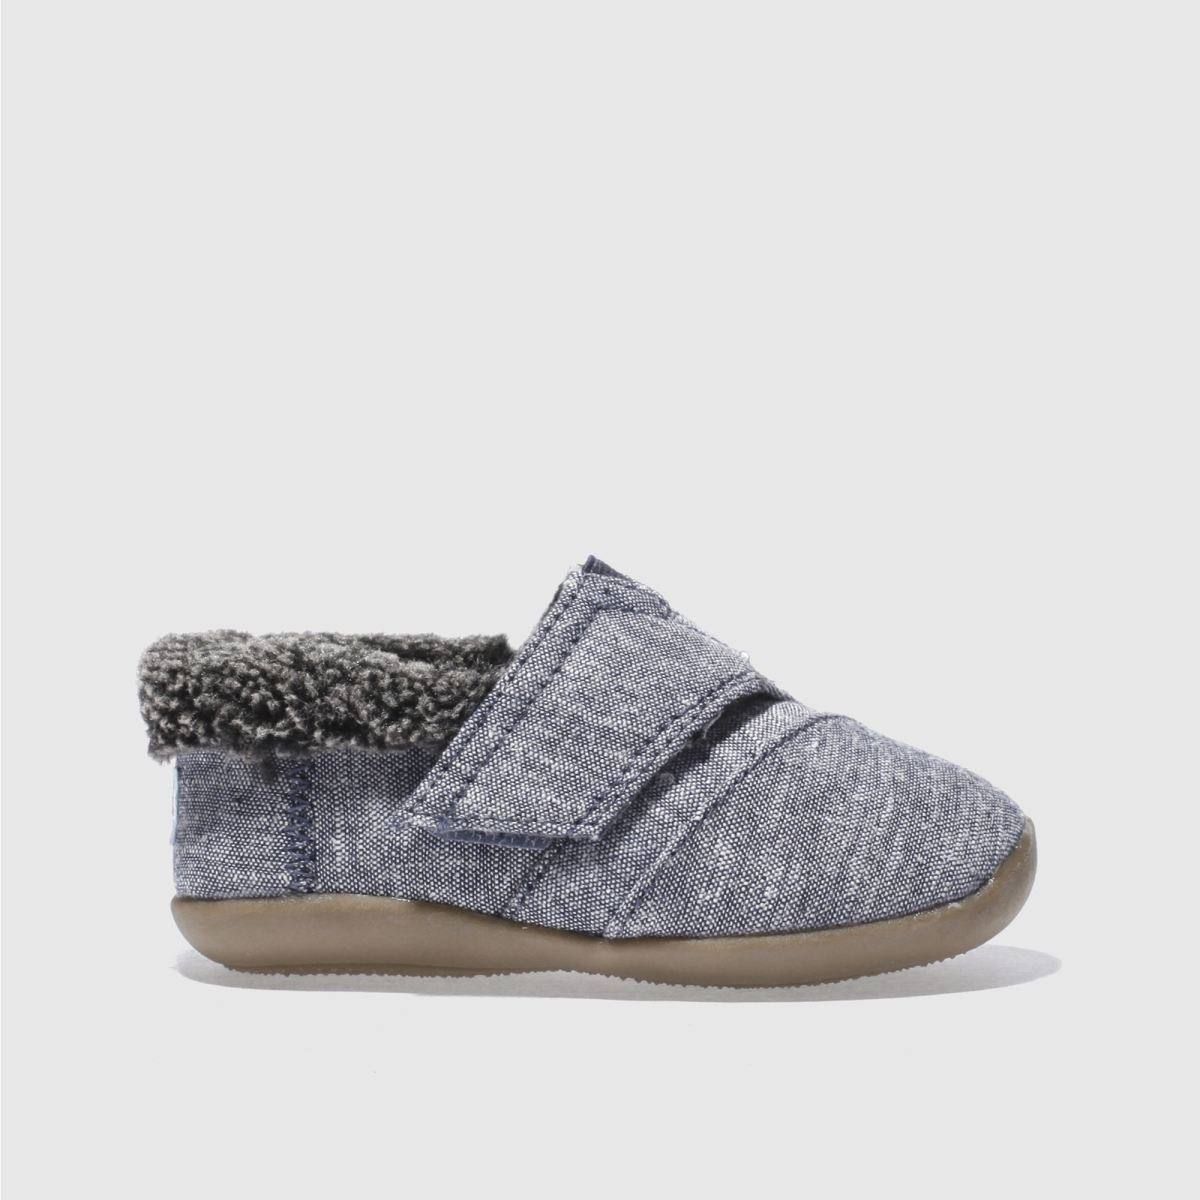 toms navy house slipper Boys Toddler Shoes